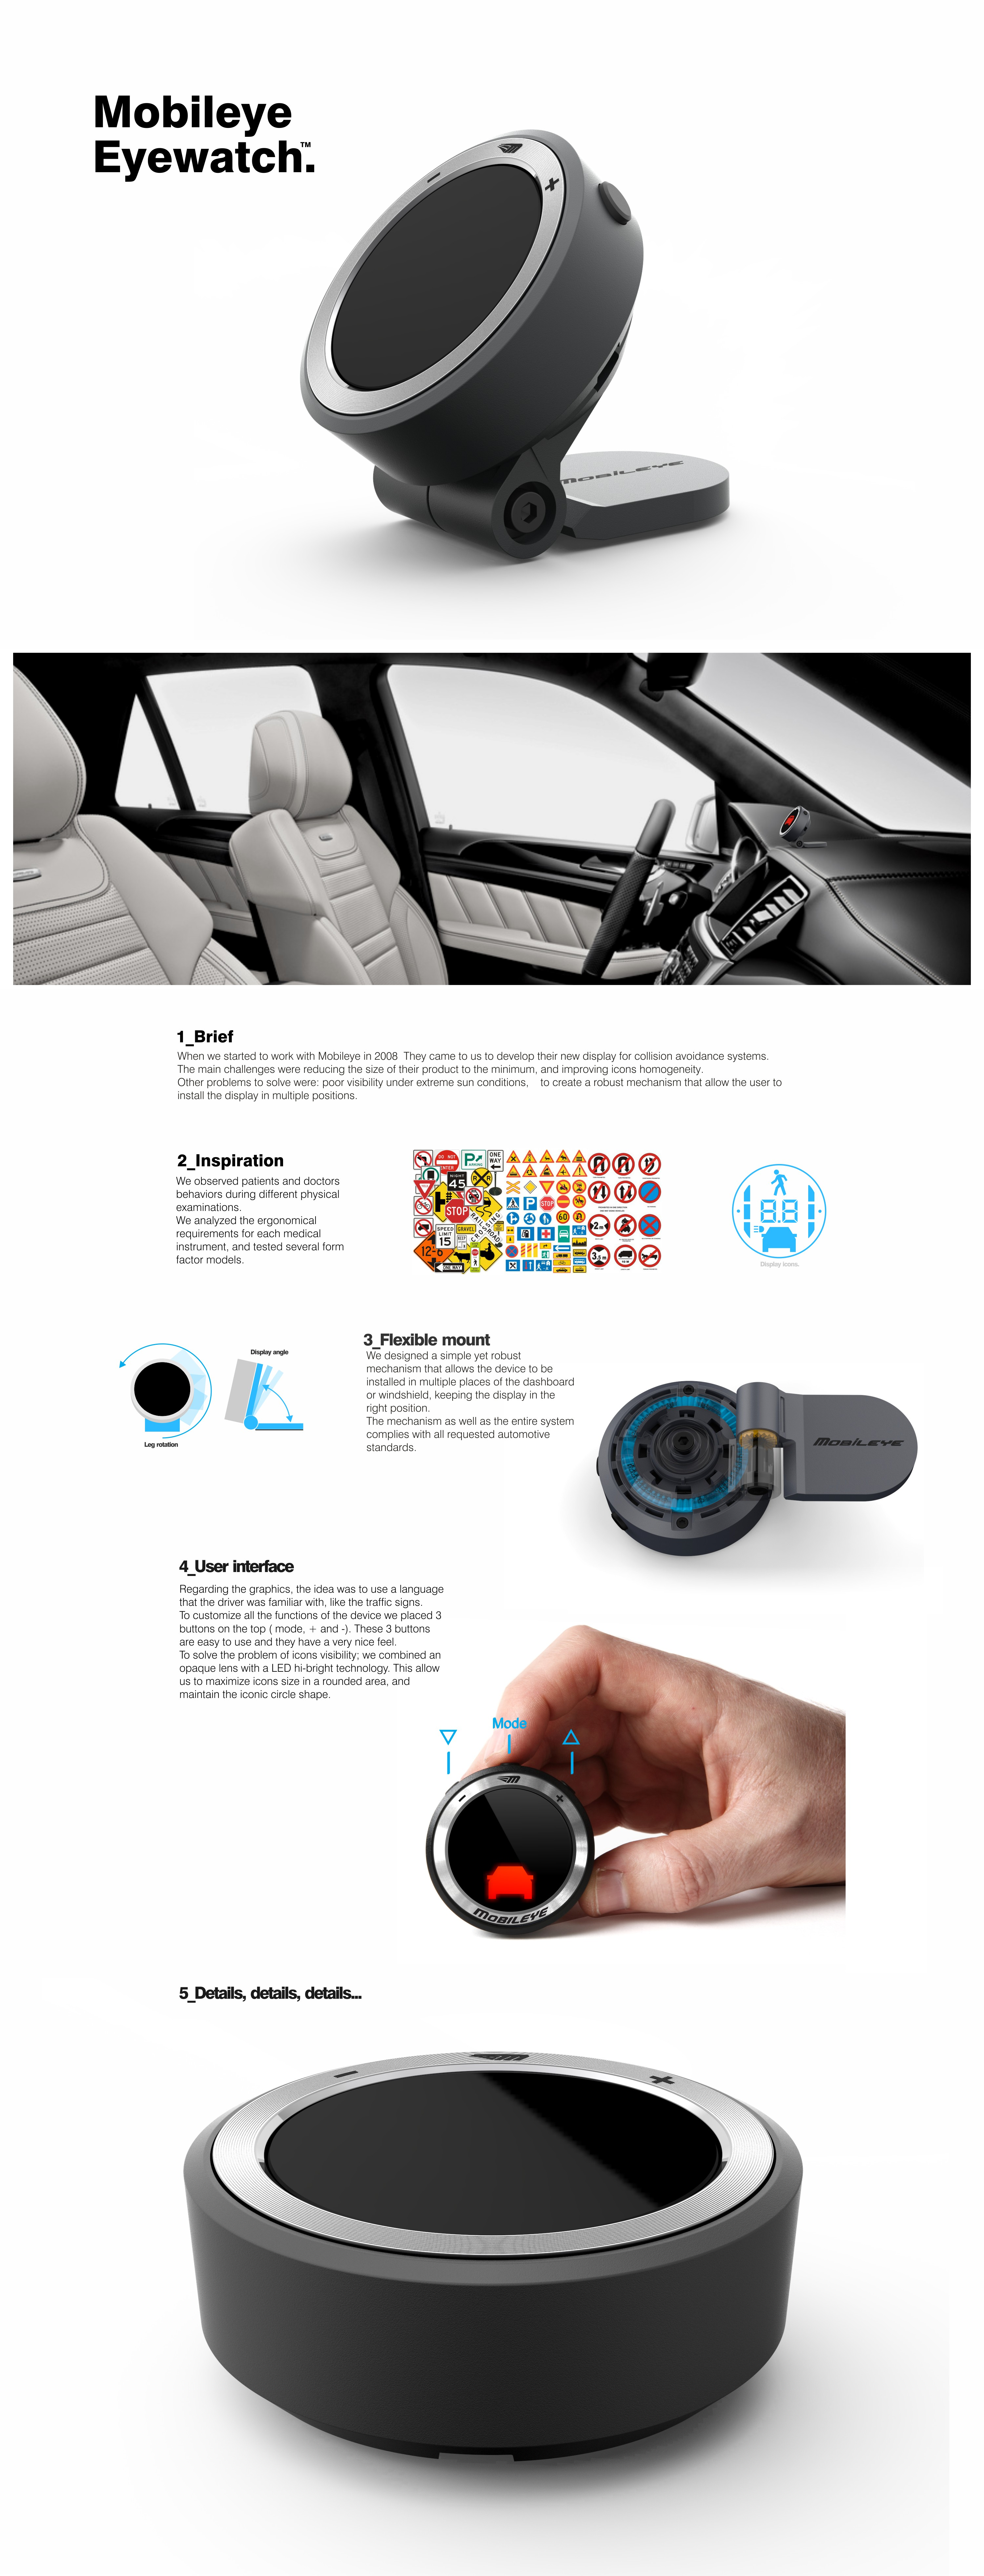 MOBILEYE EYEWATCH DESIGN